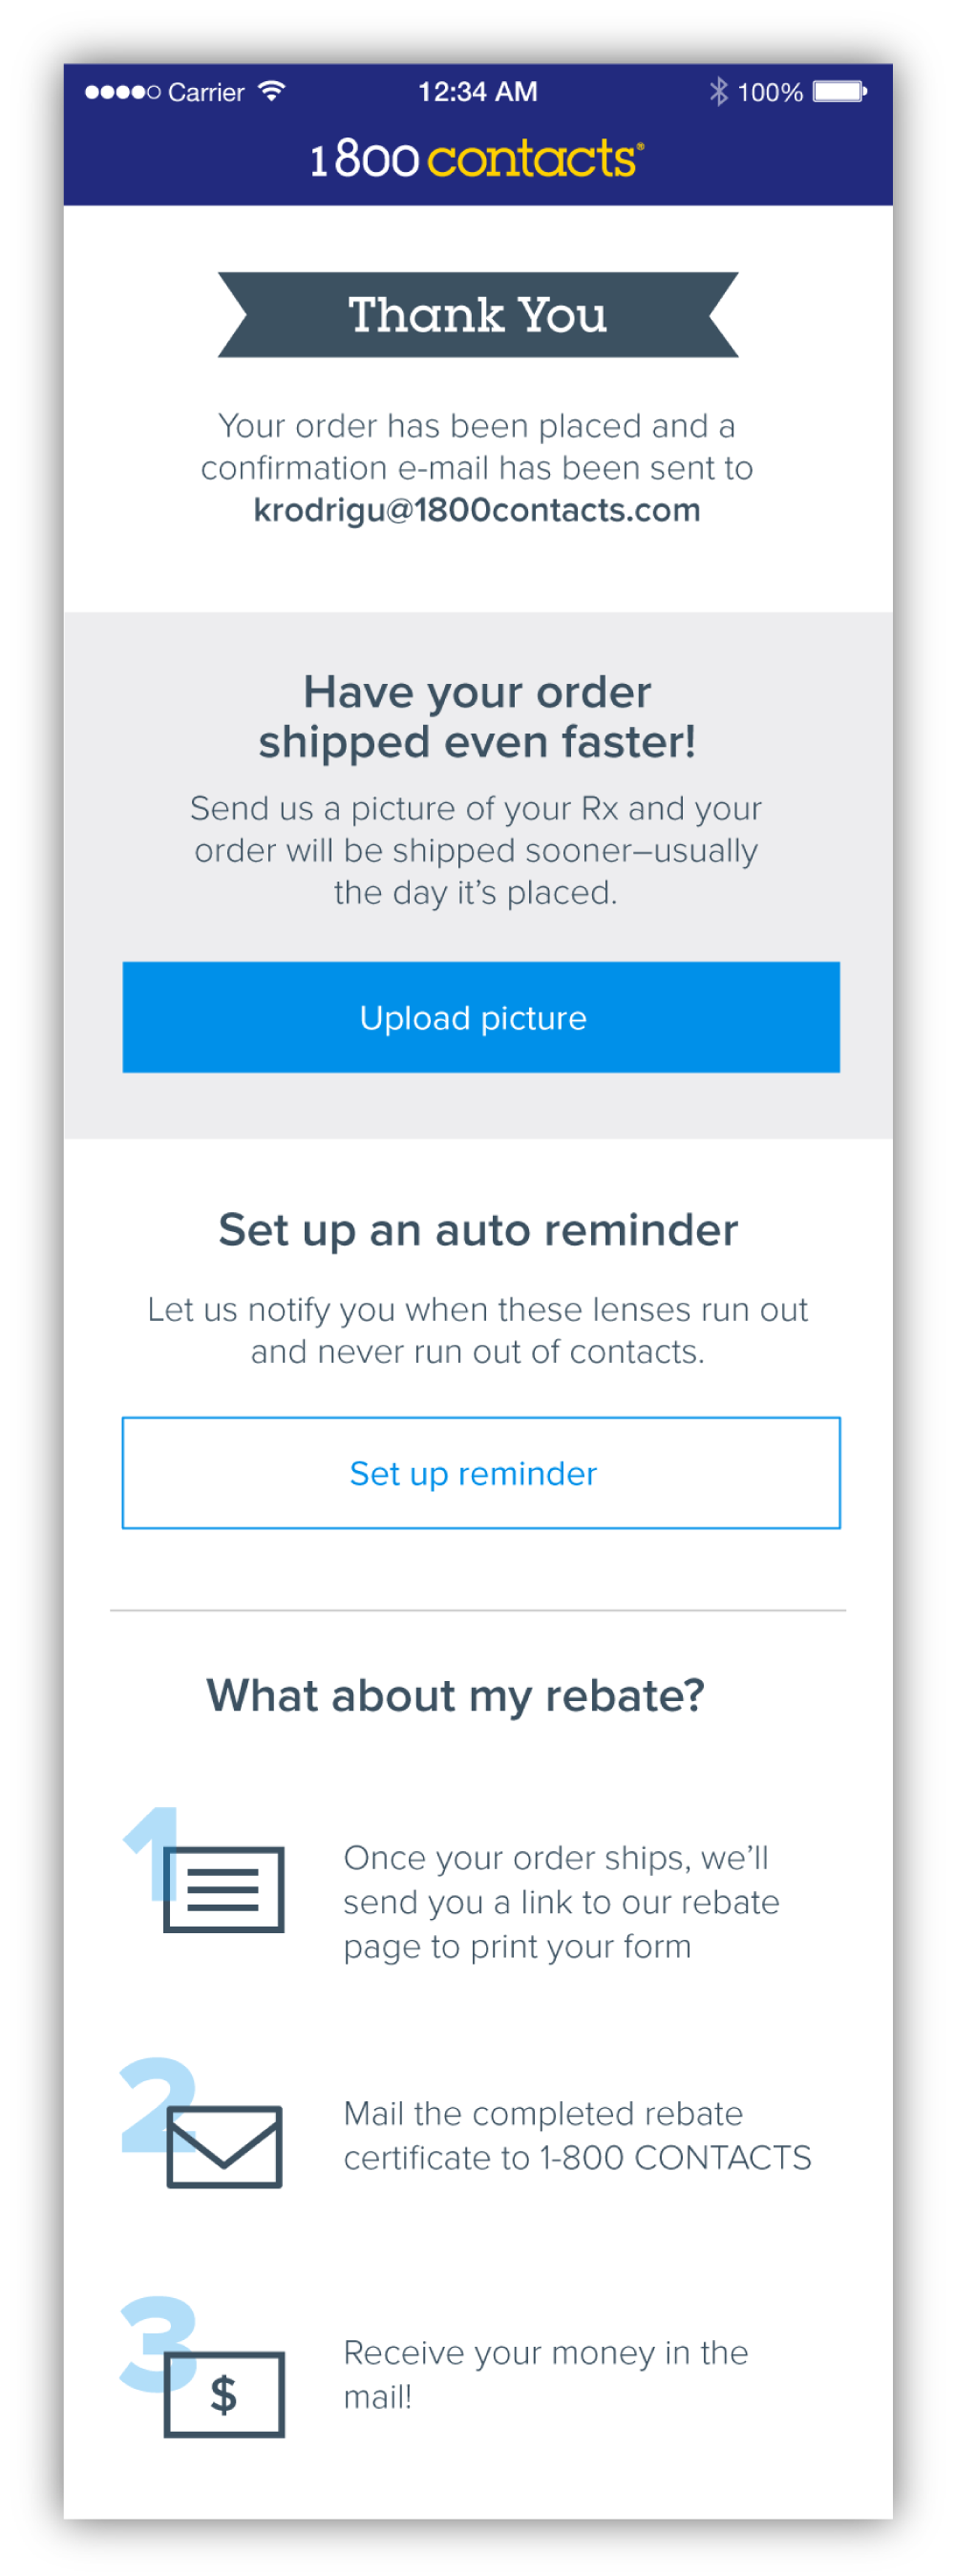 "The Thank You page was divided up so that the content would be easier to consume. I also added the ""What about my rebate?"" section so that users wouldn't be left in the dark as to what to do concerning their rebate."